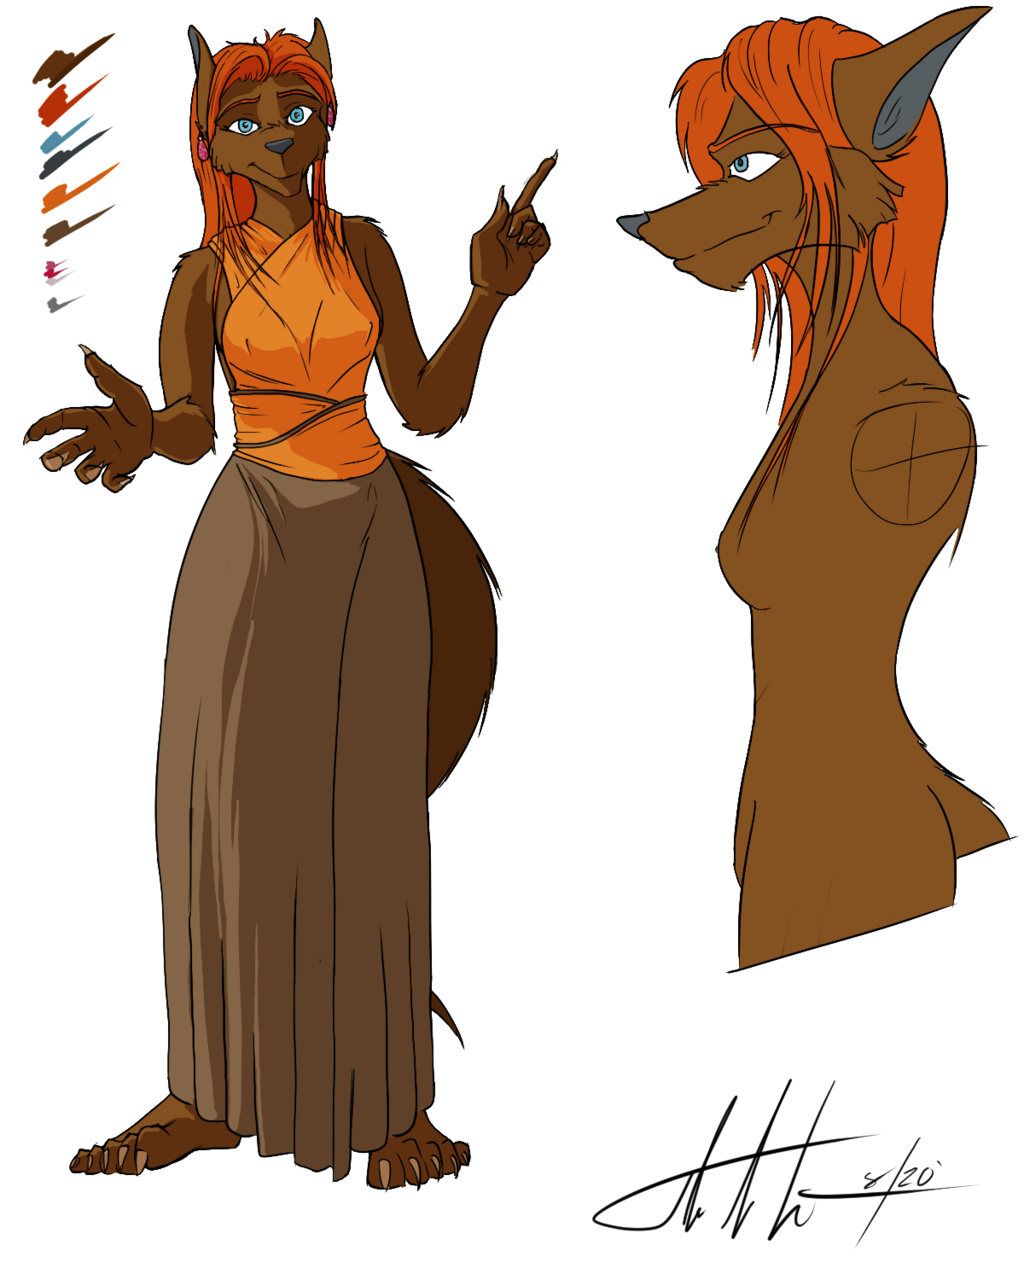 Danae Orlowsky Ref [Clothed Edition]